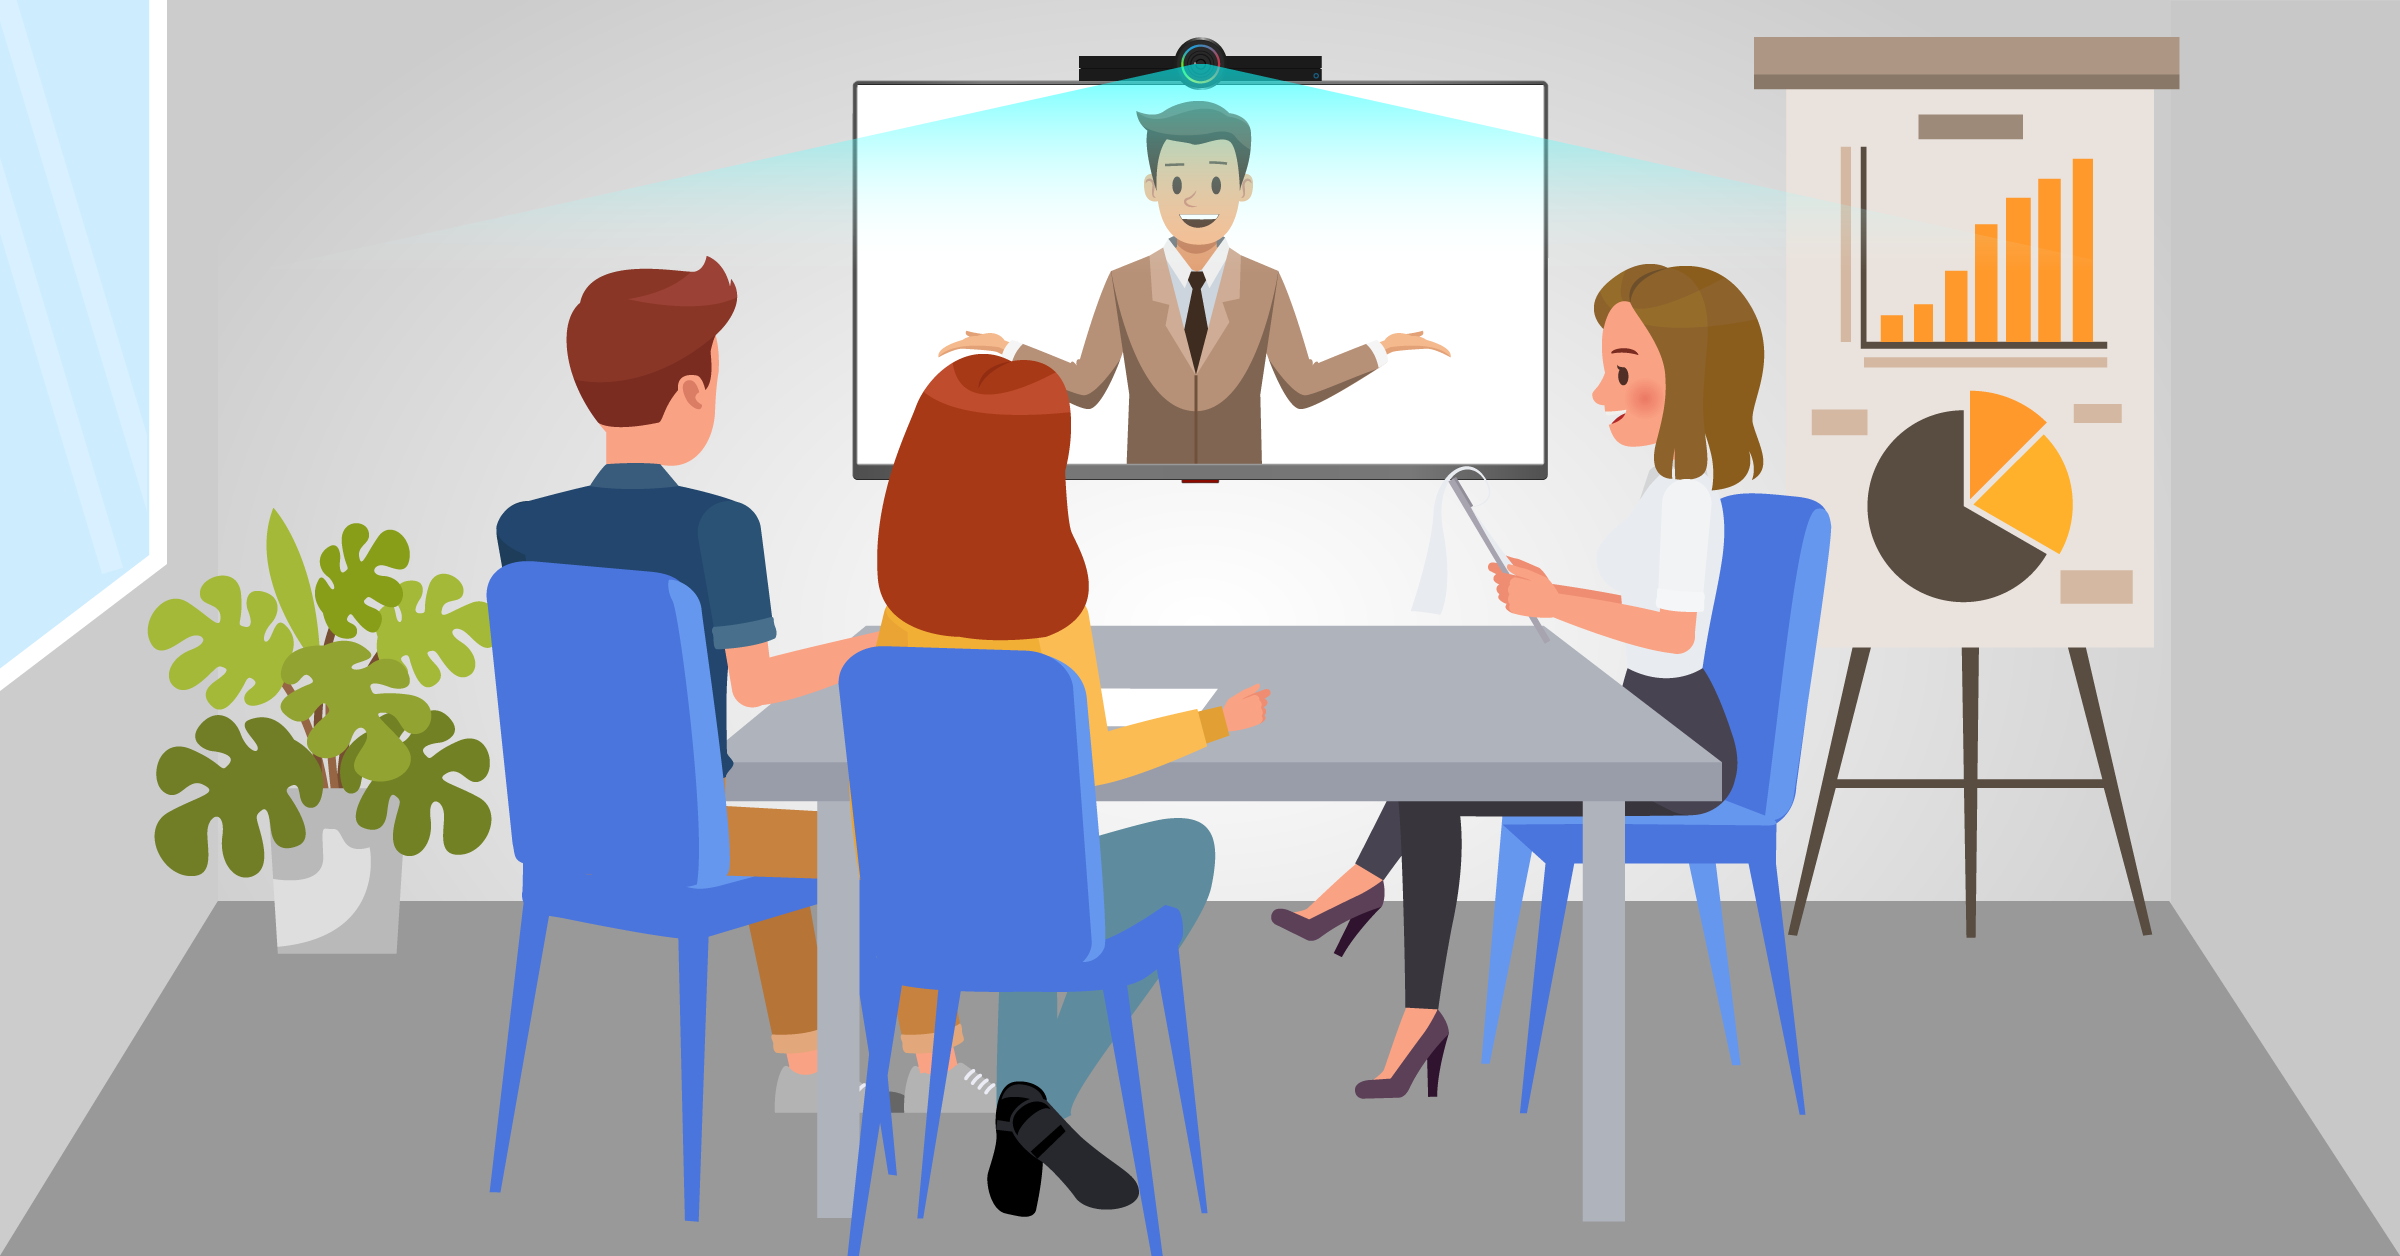 Our Series on Remote Working: HELLO Cam for Video Conference Calls